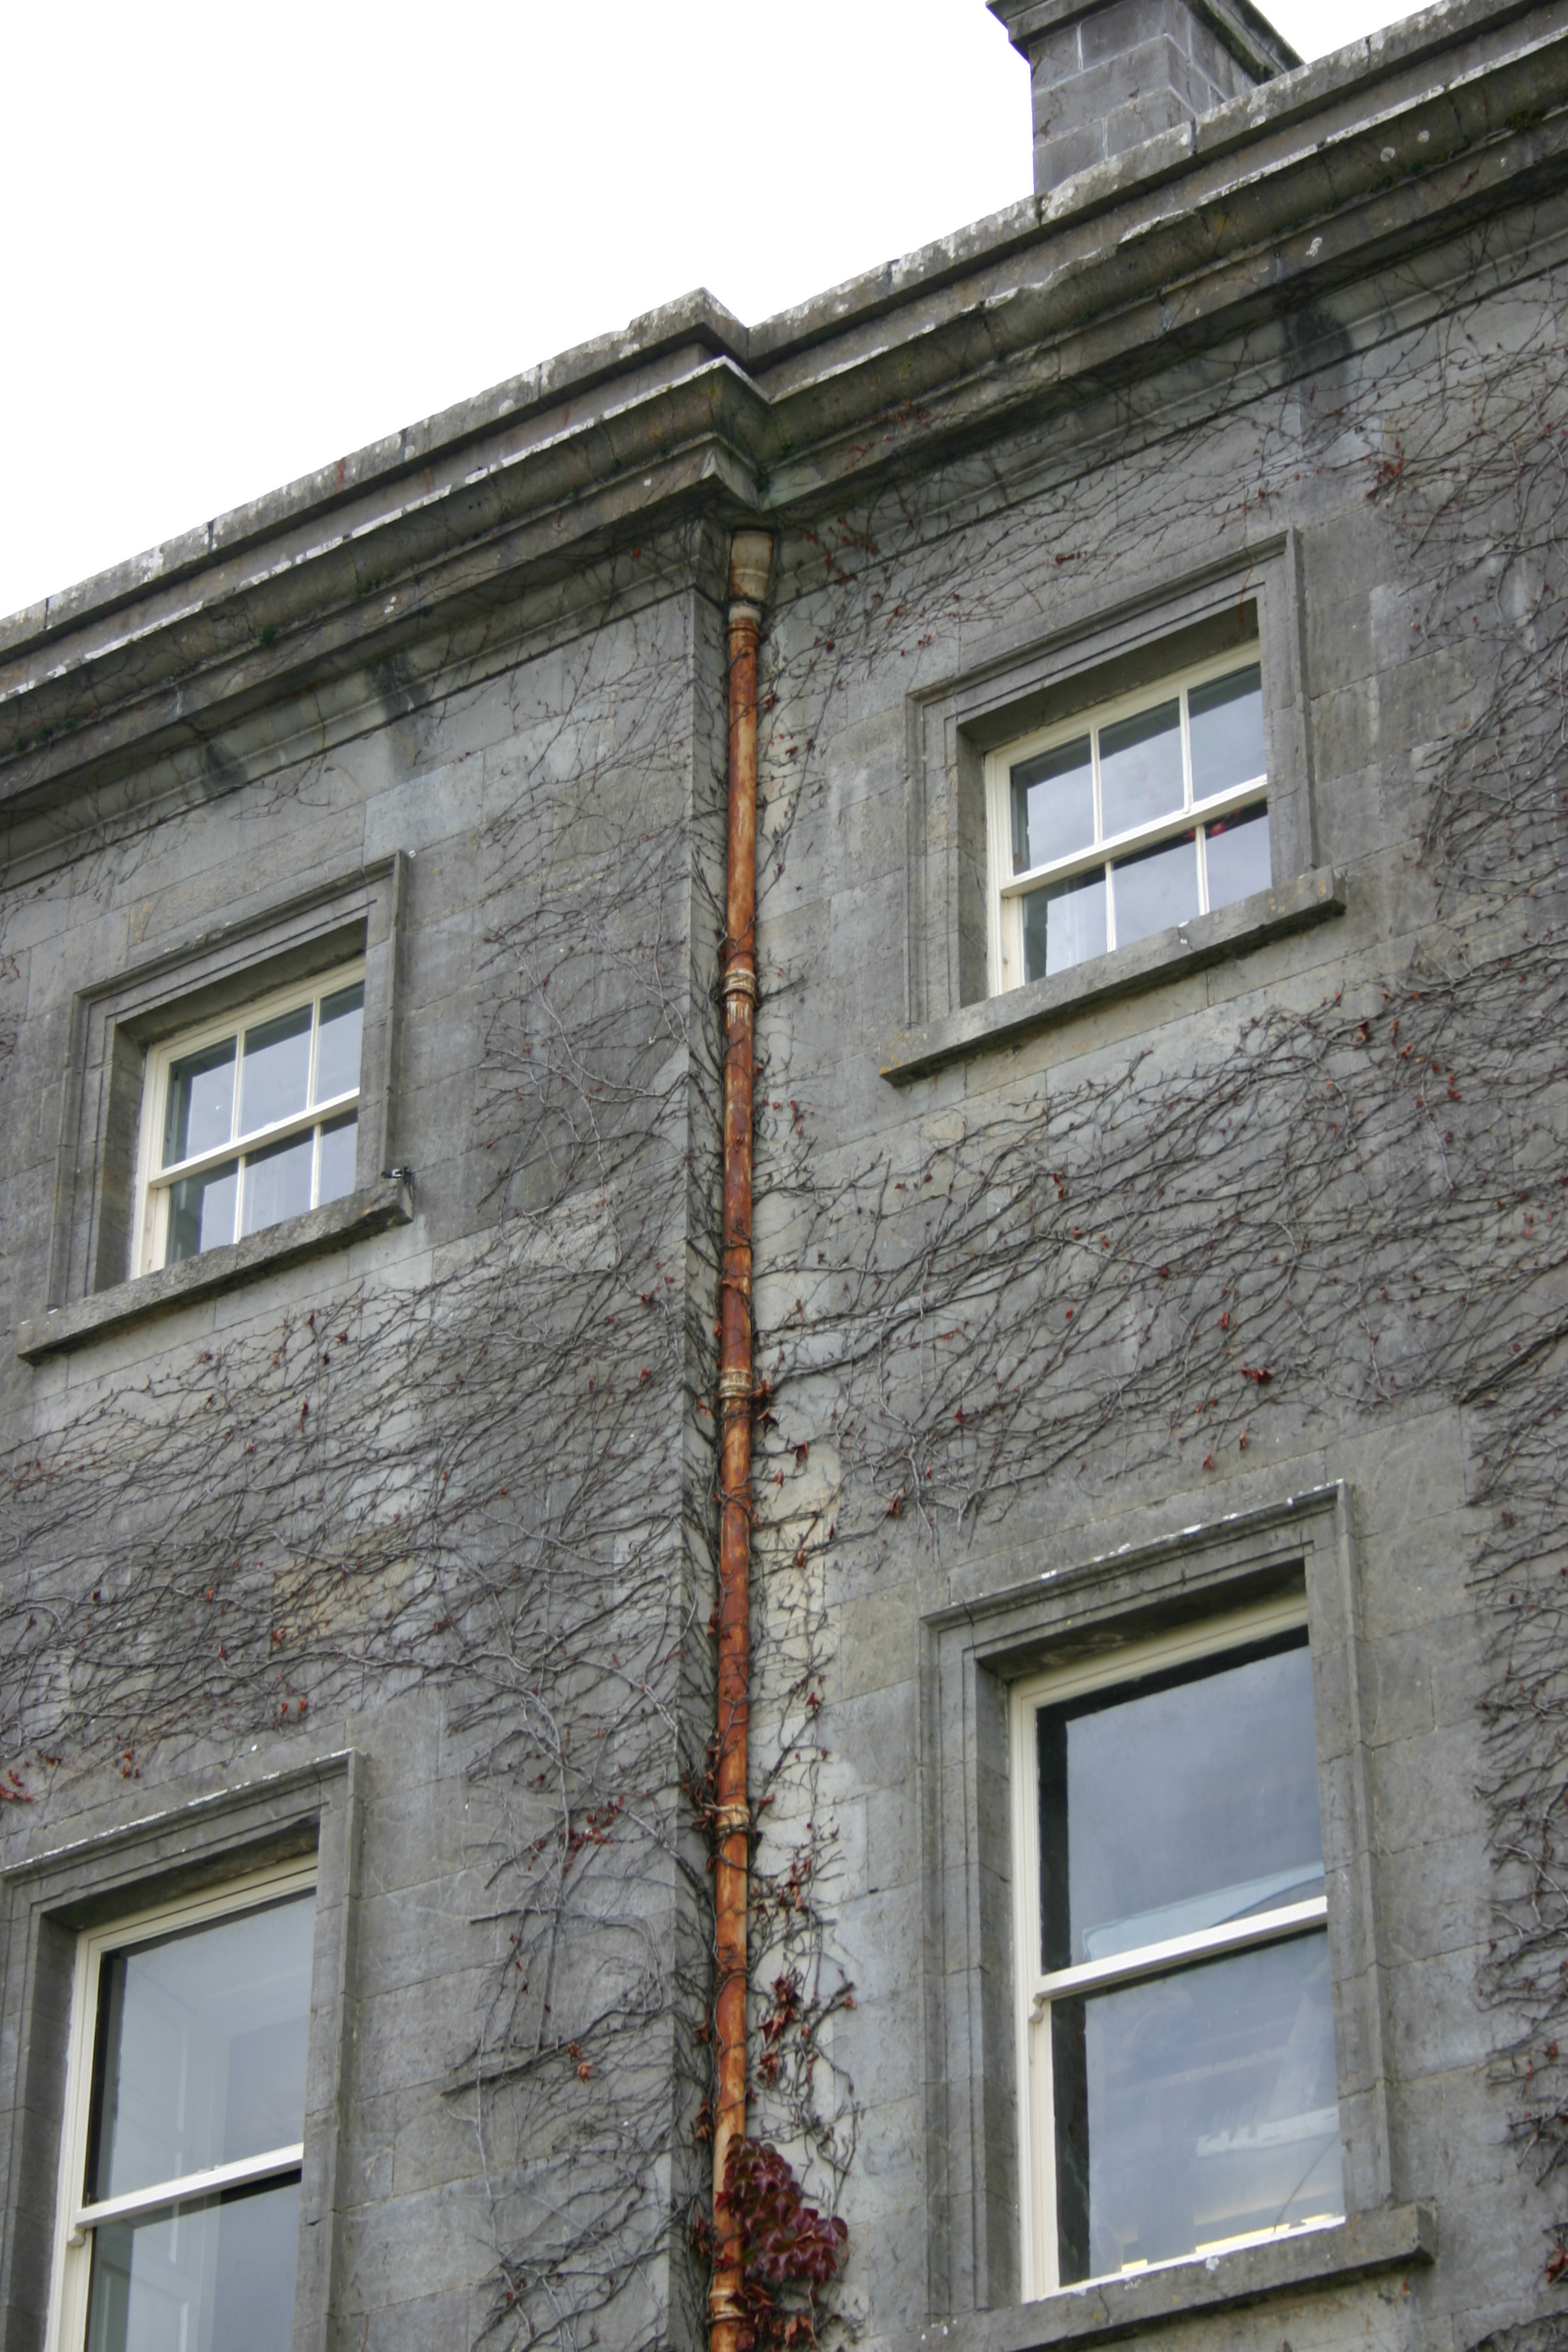 Water ingress and damp had caused structural damage to the building